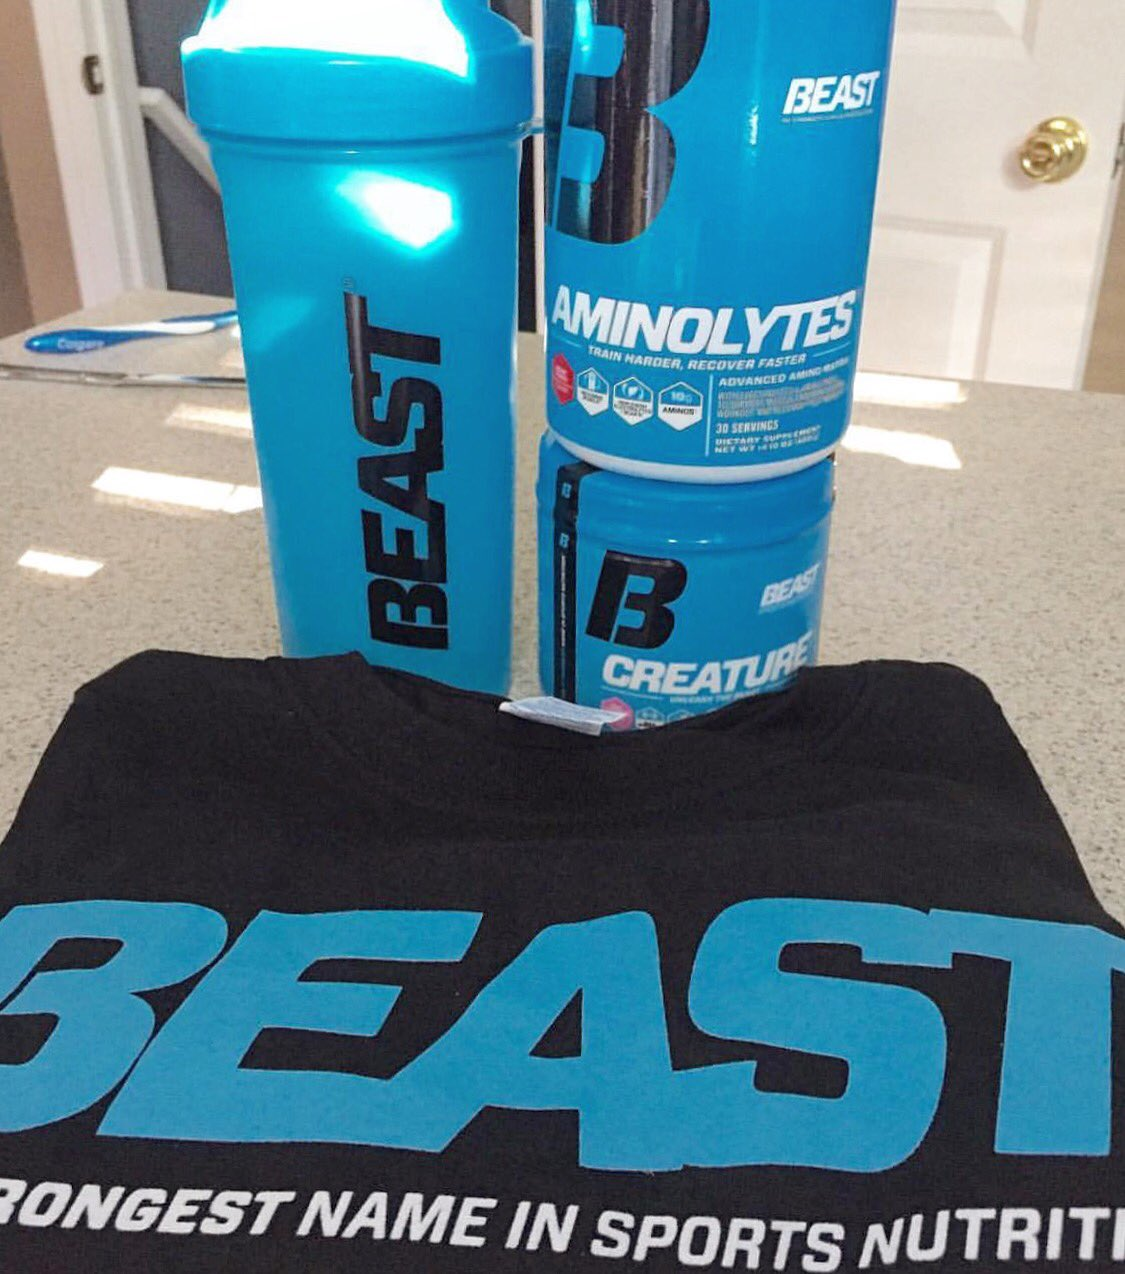 Beast Sports Contest! Win a Beast shirt, Creature, Aminolytes and Shaker! BOOM!  RT 2 ENTER!! https://t.co/SV1bCtp7yj